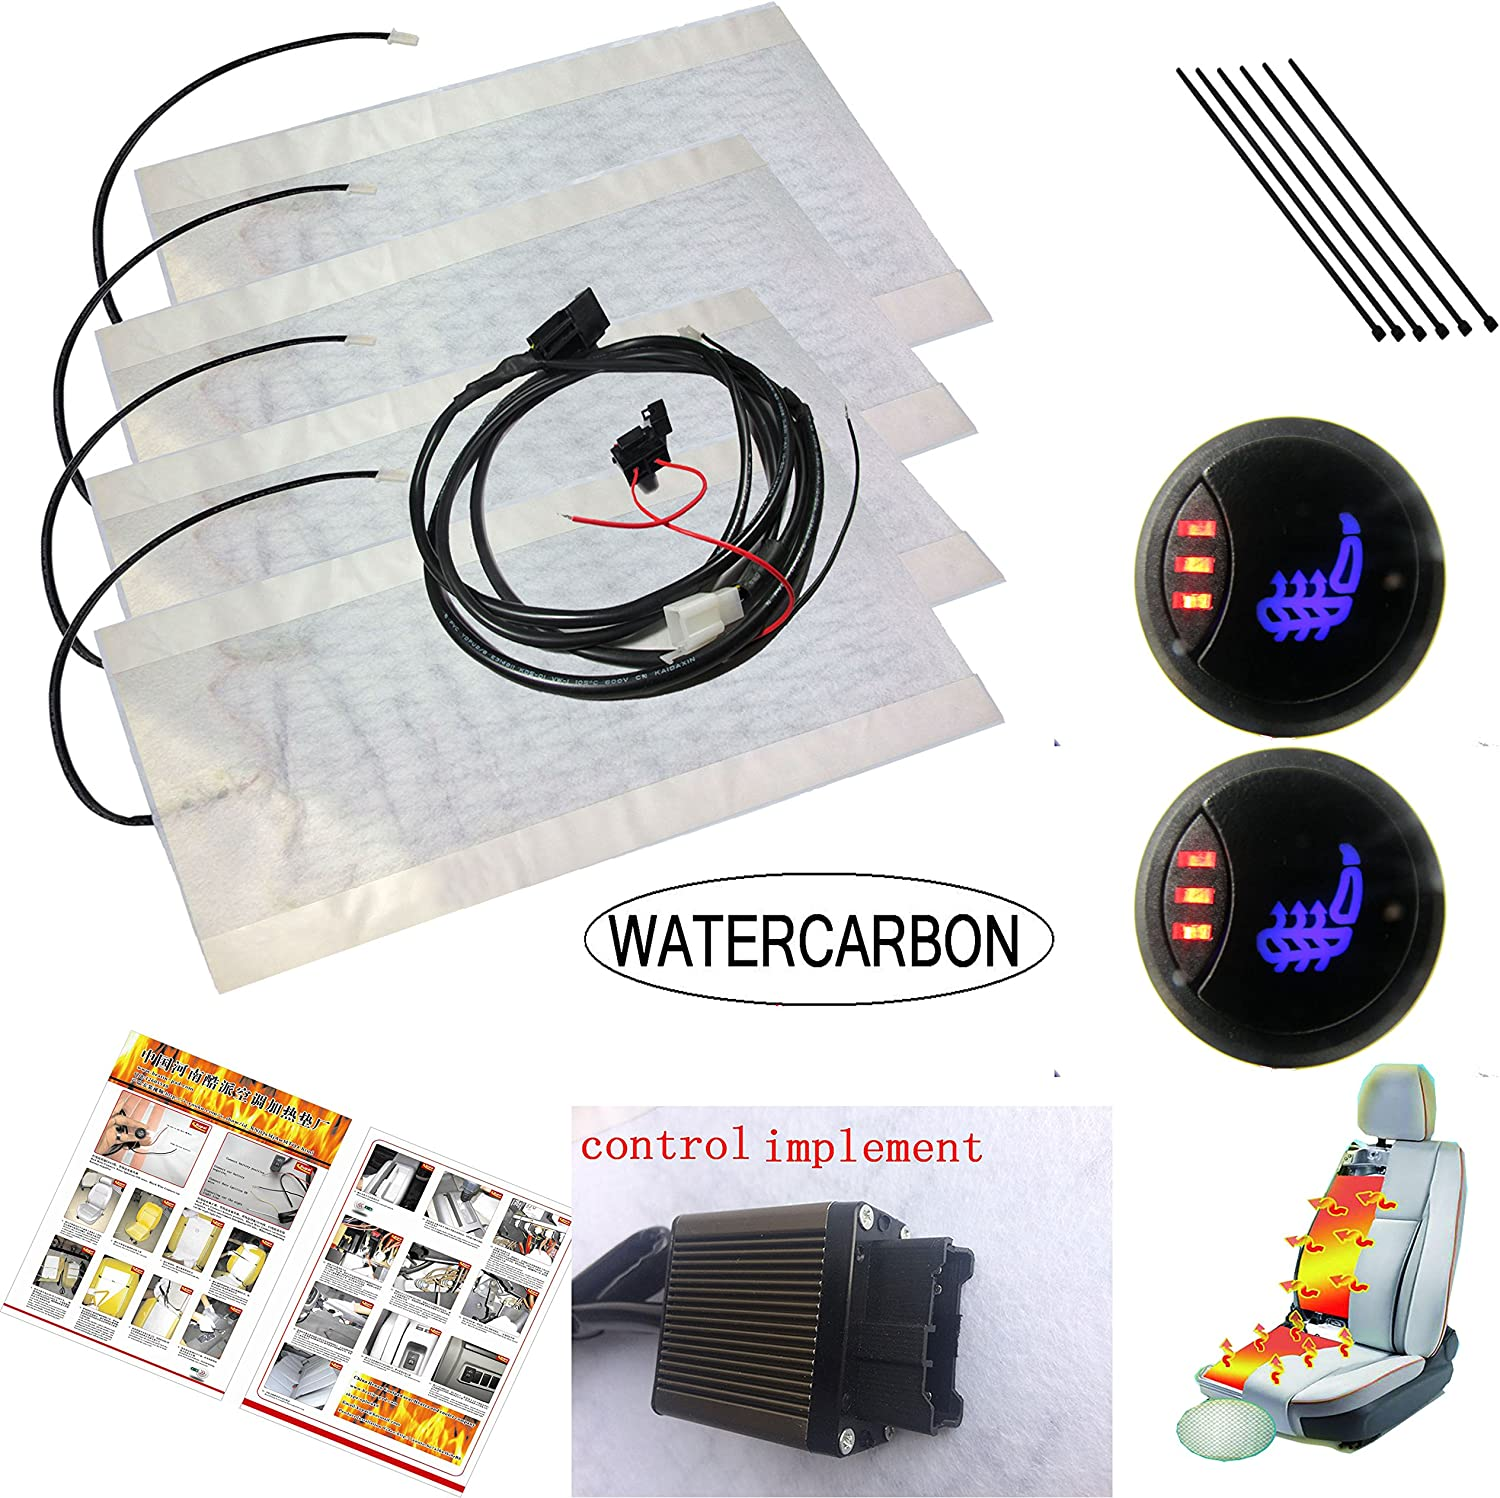 WATERCARBON Carbon Fiber Seat Heater Kit LED1 Side 3 Point Circular 3 Gear Switch Set Car Auto Heated Heating Seat Cushion Cover Heater Warmer Pad Winter 12V